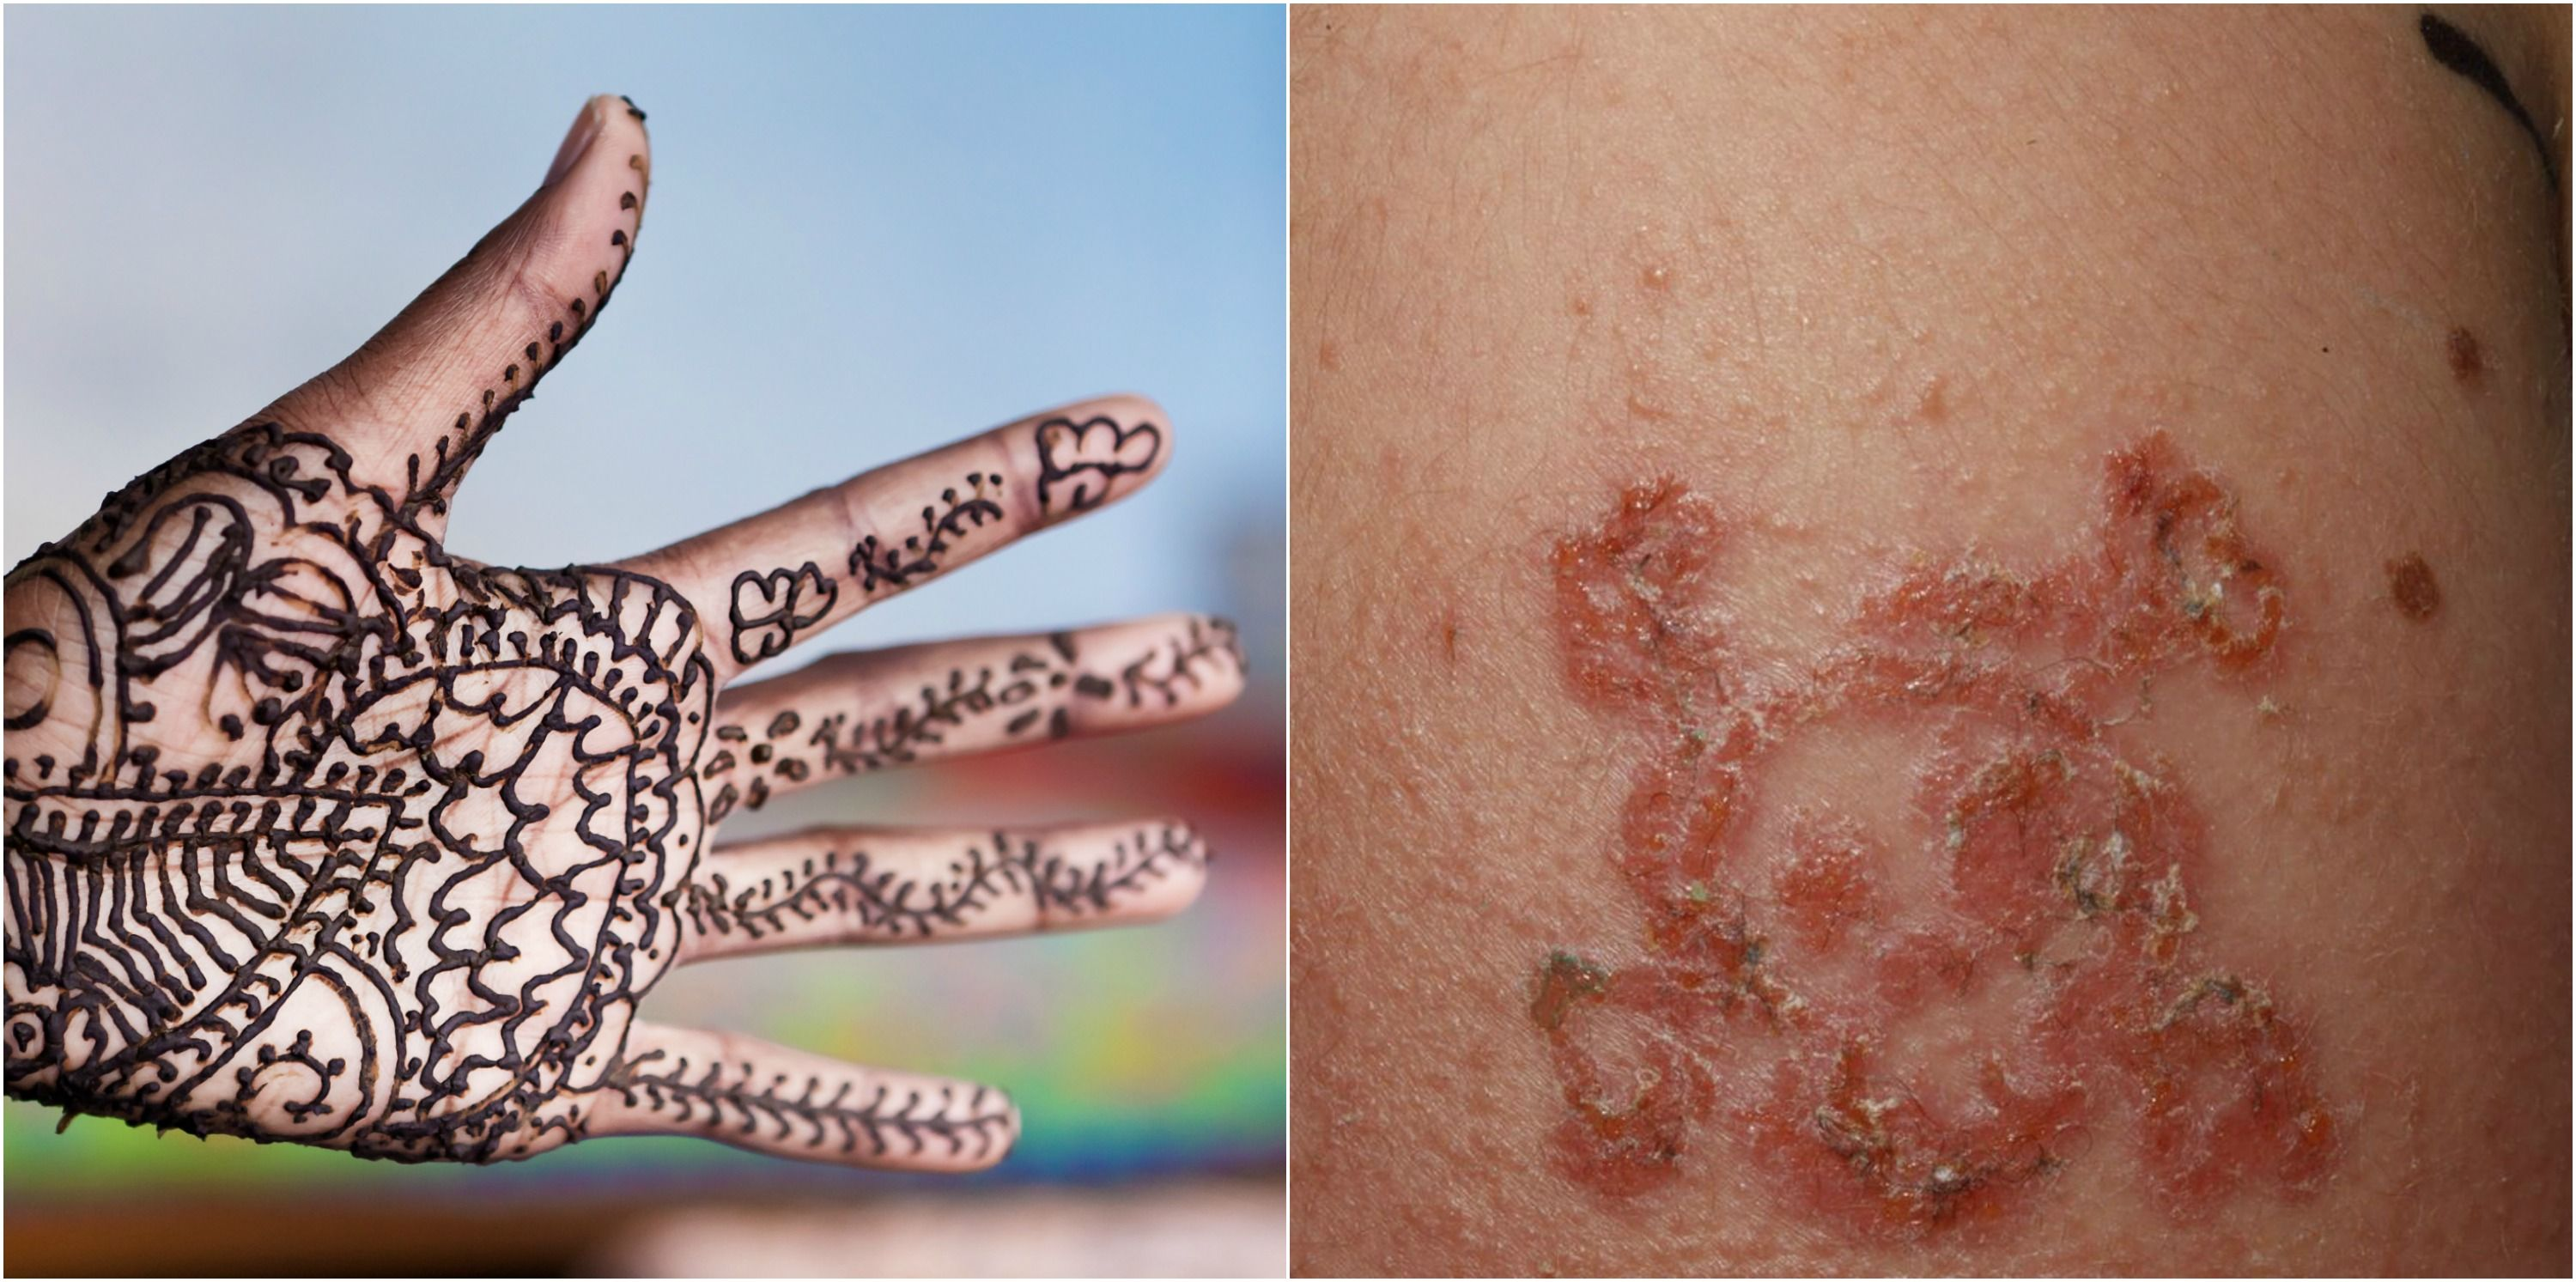 10 Year Old Boy Suffers Allergic Reaction To Black Henna Tattoo Photos